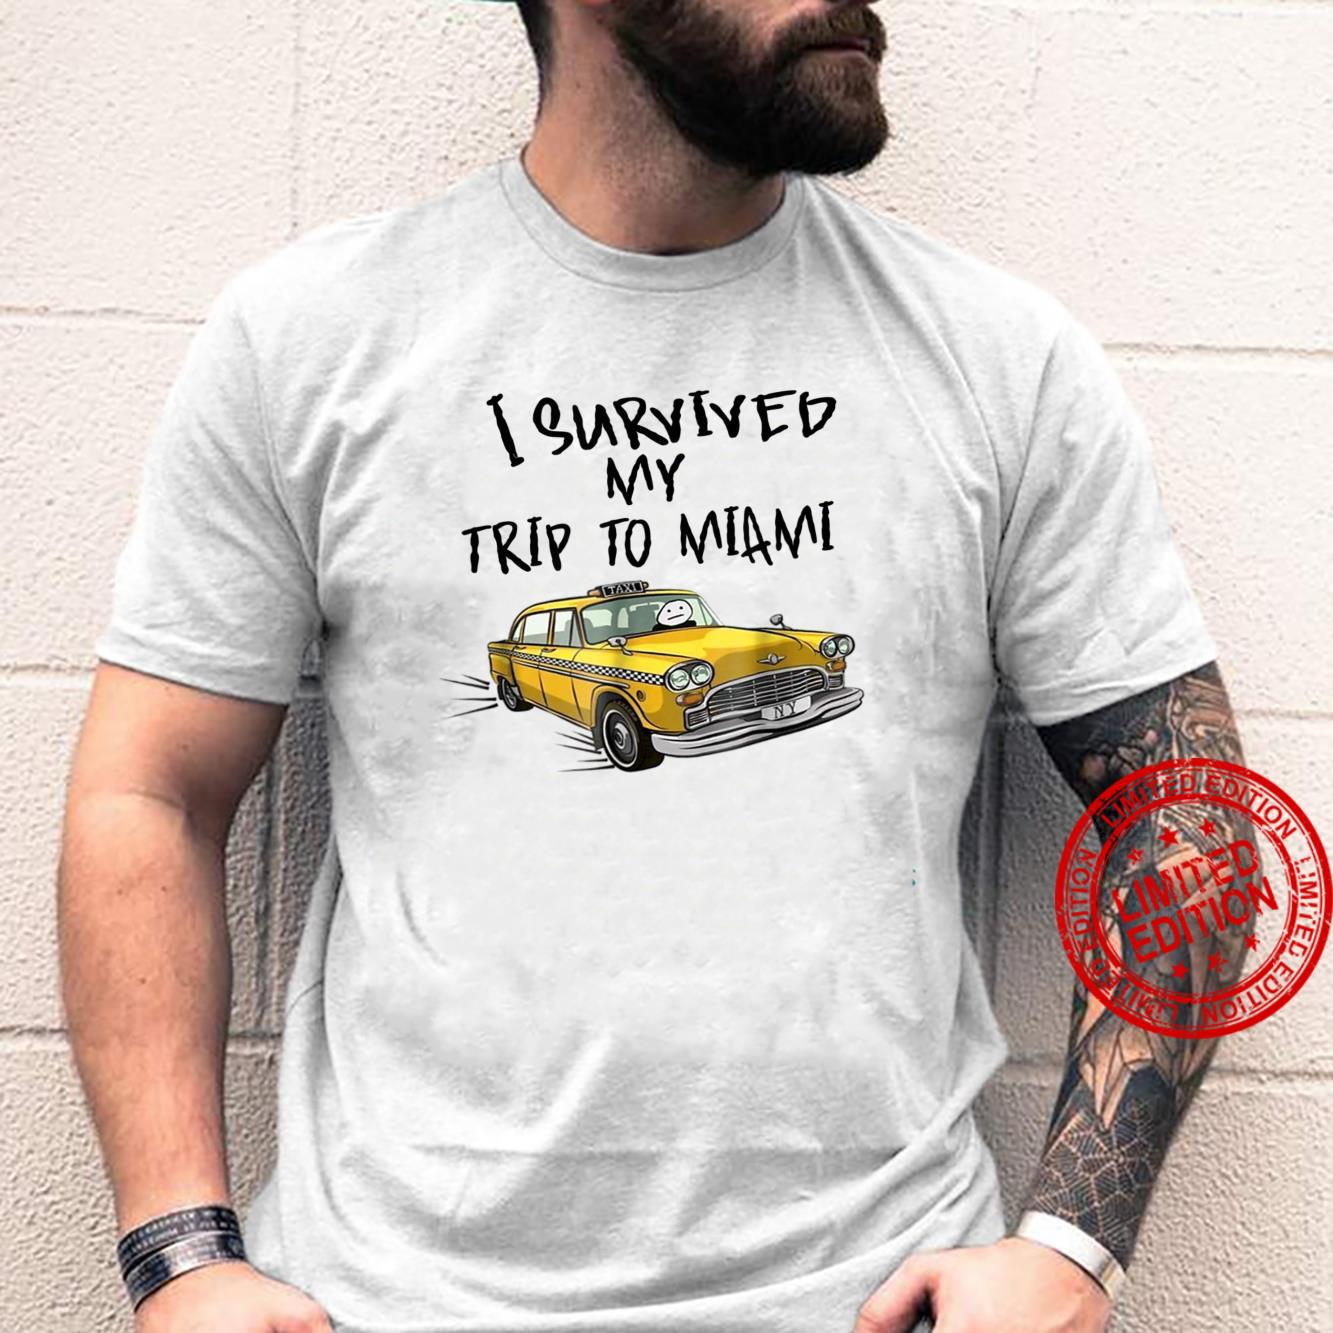 I survived my trip to Miami Shirt